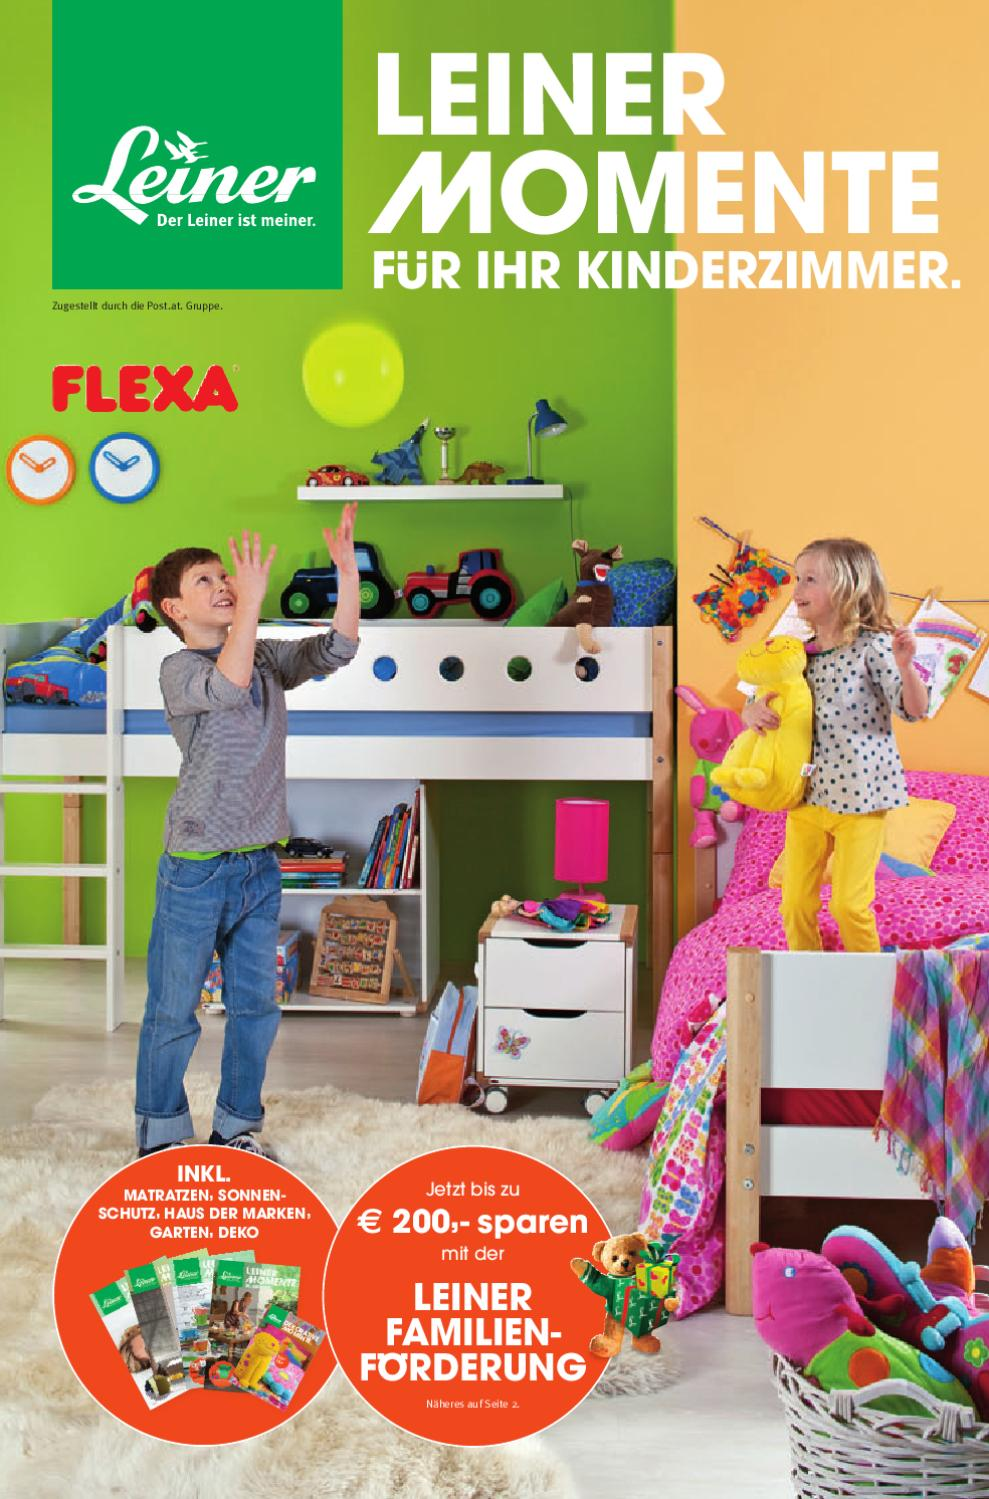 Leiner kinder by aktionsfinder gmbh issuu - Kinderzimmer leiner ...